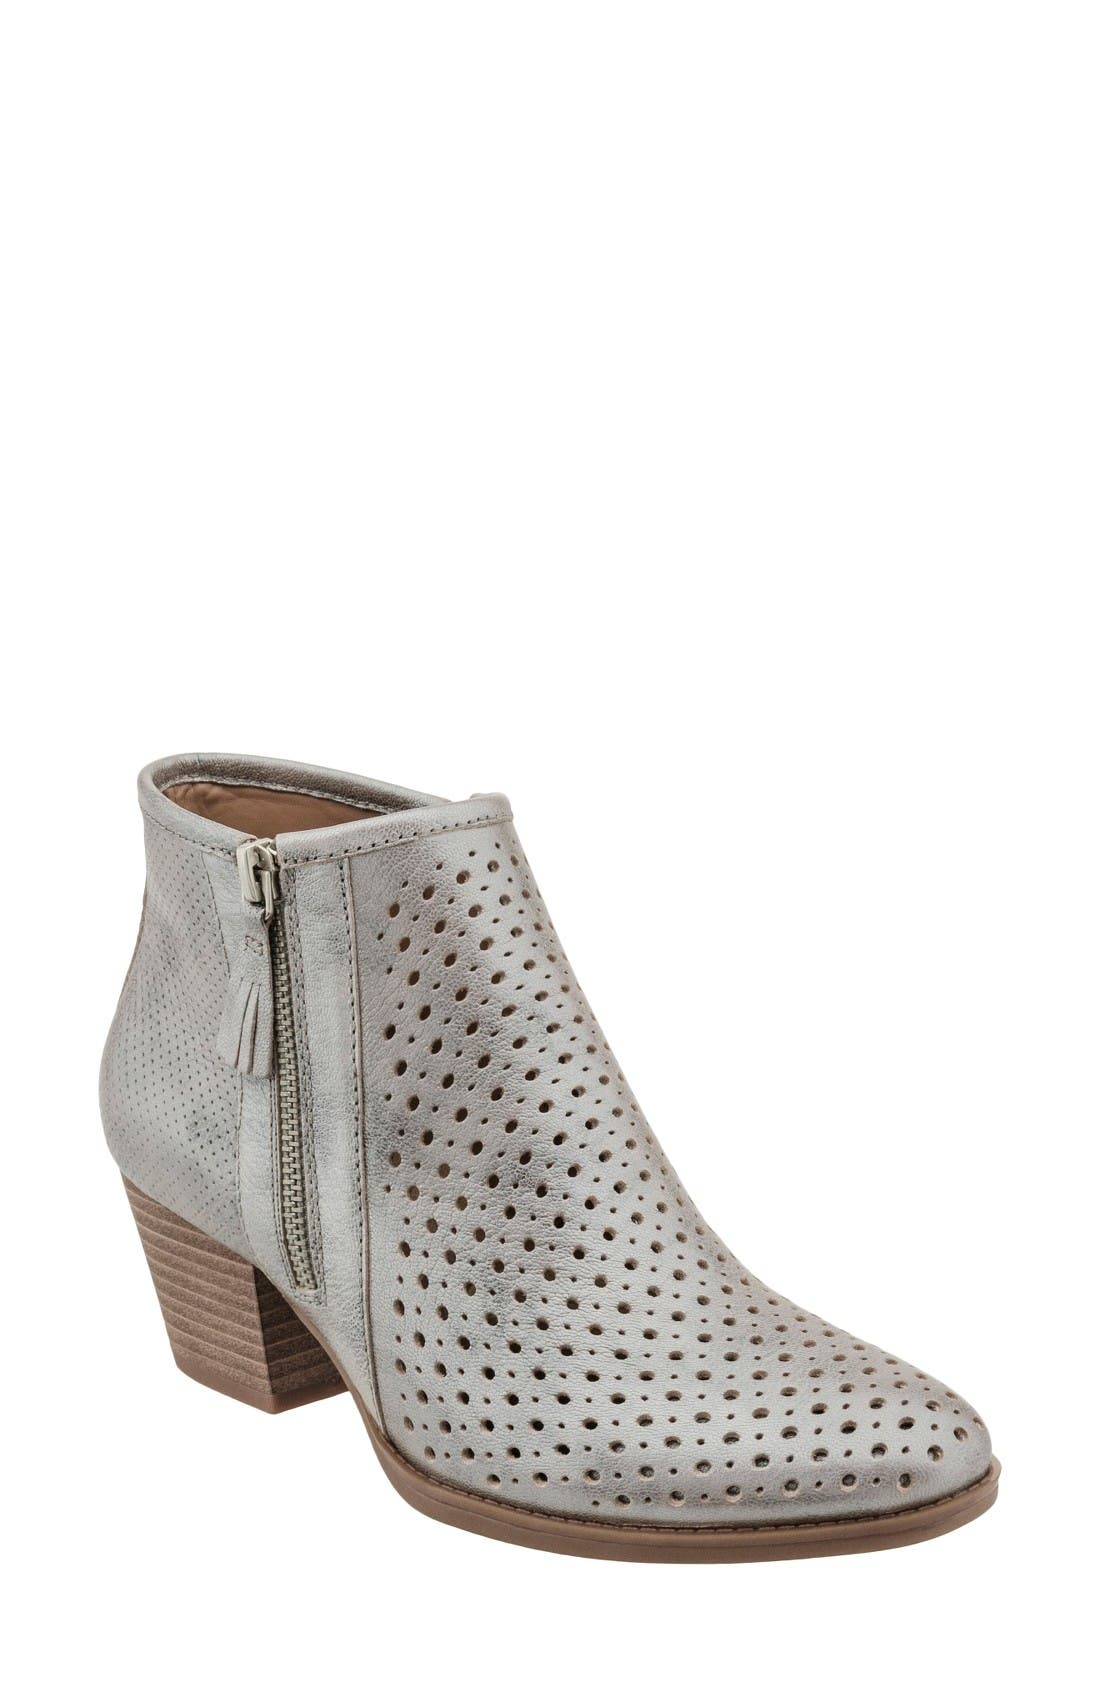 Main Image - Earth® Pineberry Bootie (Women)